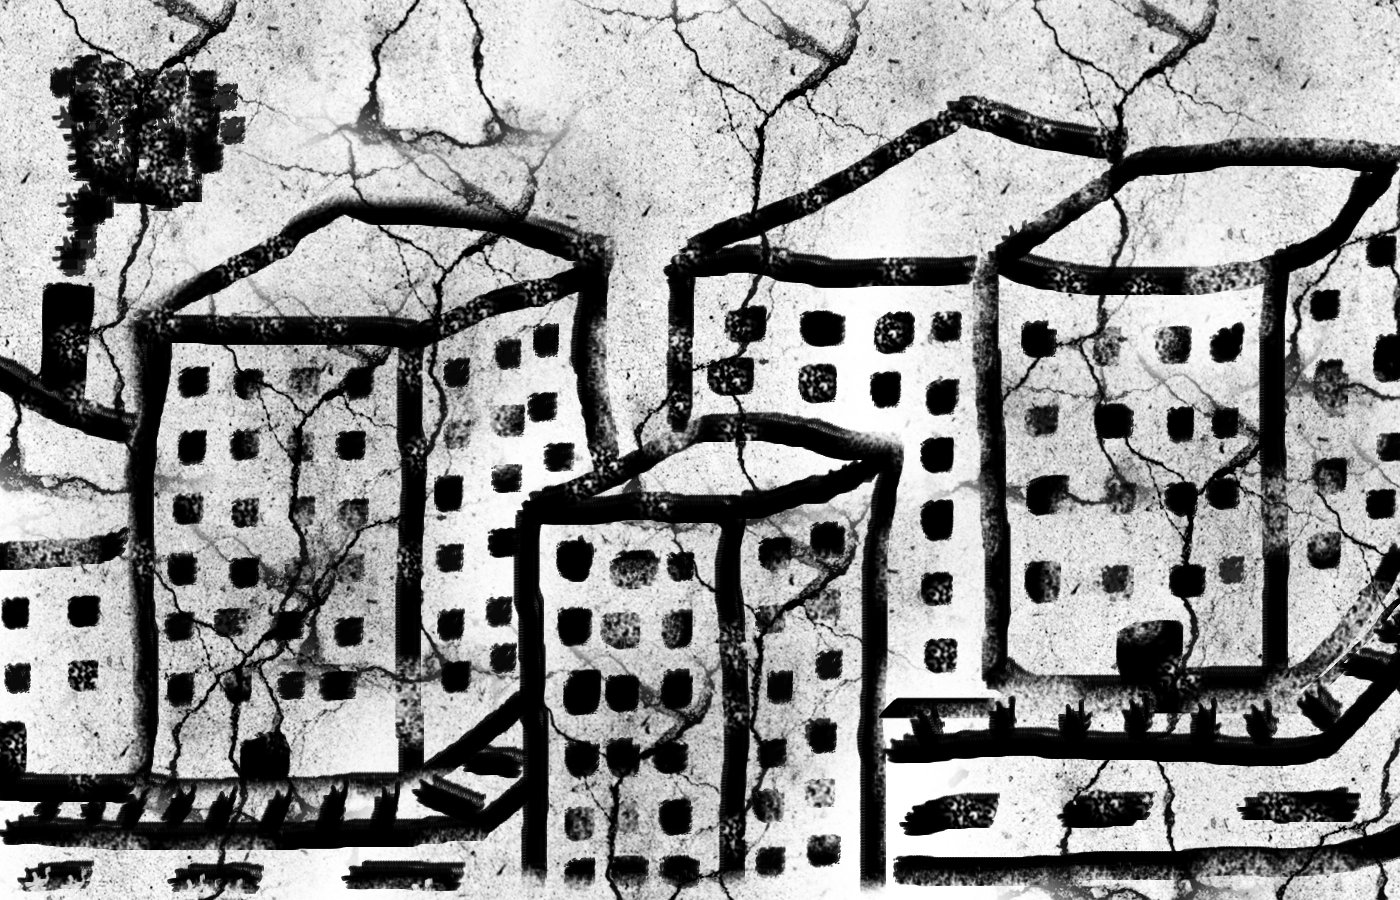 Cracked City